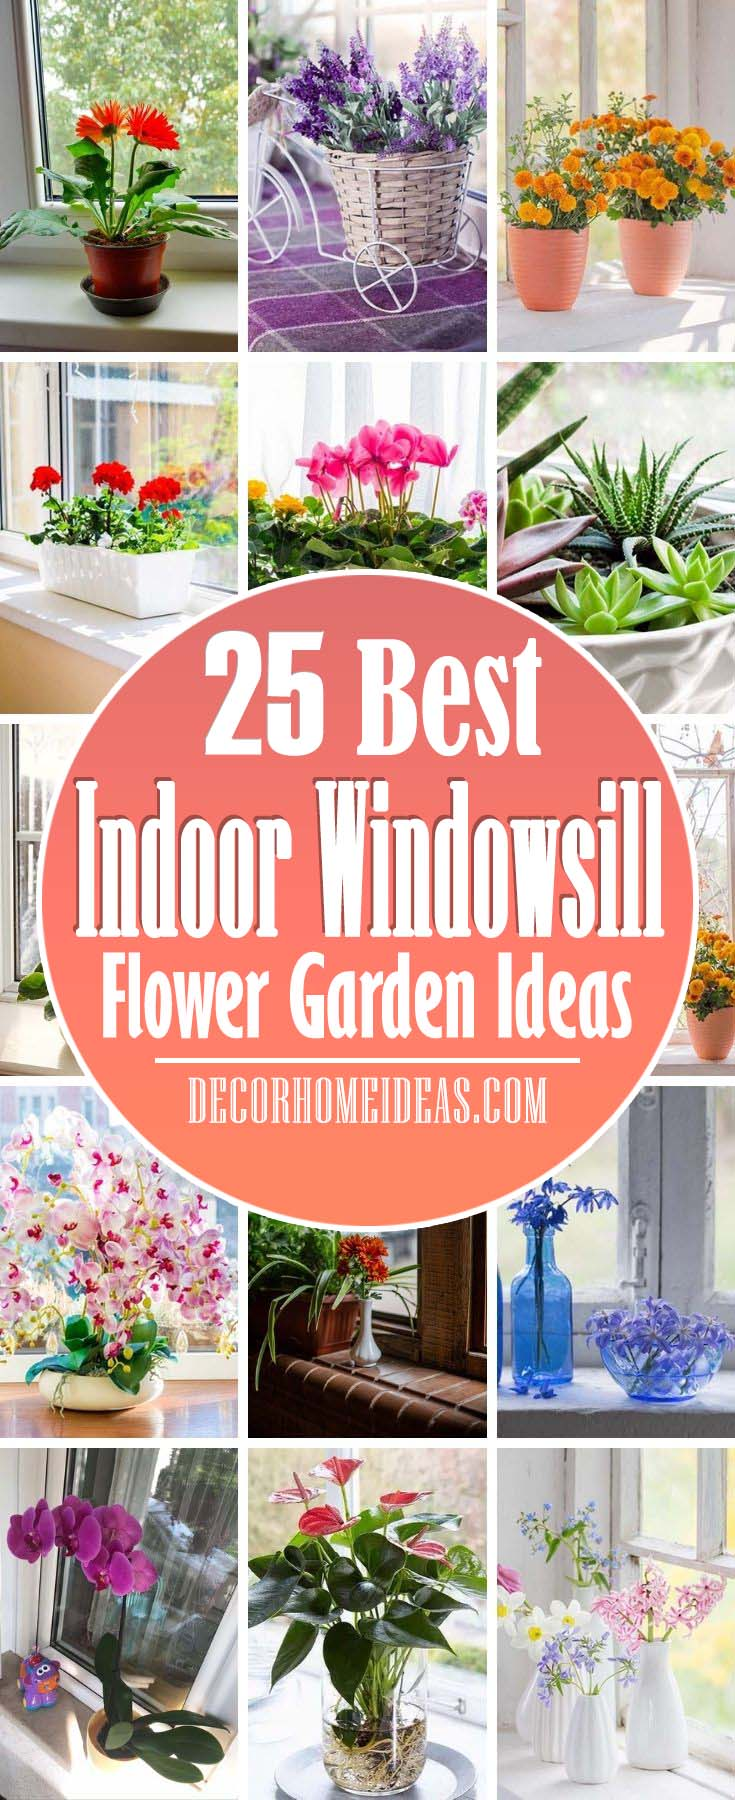 Best Indoor Windowsill Flower Garden Ideas. These space-saving flower pot ideas are just right for a modest indoor garden—whether you're a green thumb or a chronic plant killer. #decorhomeideas